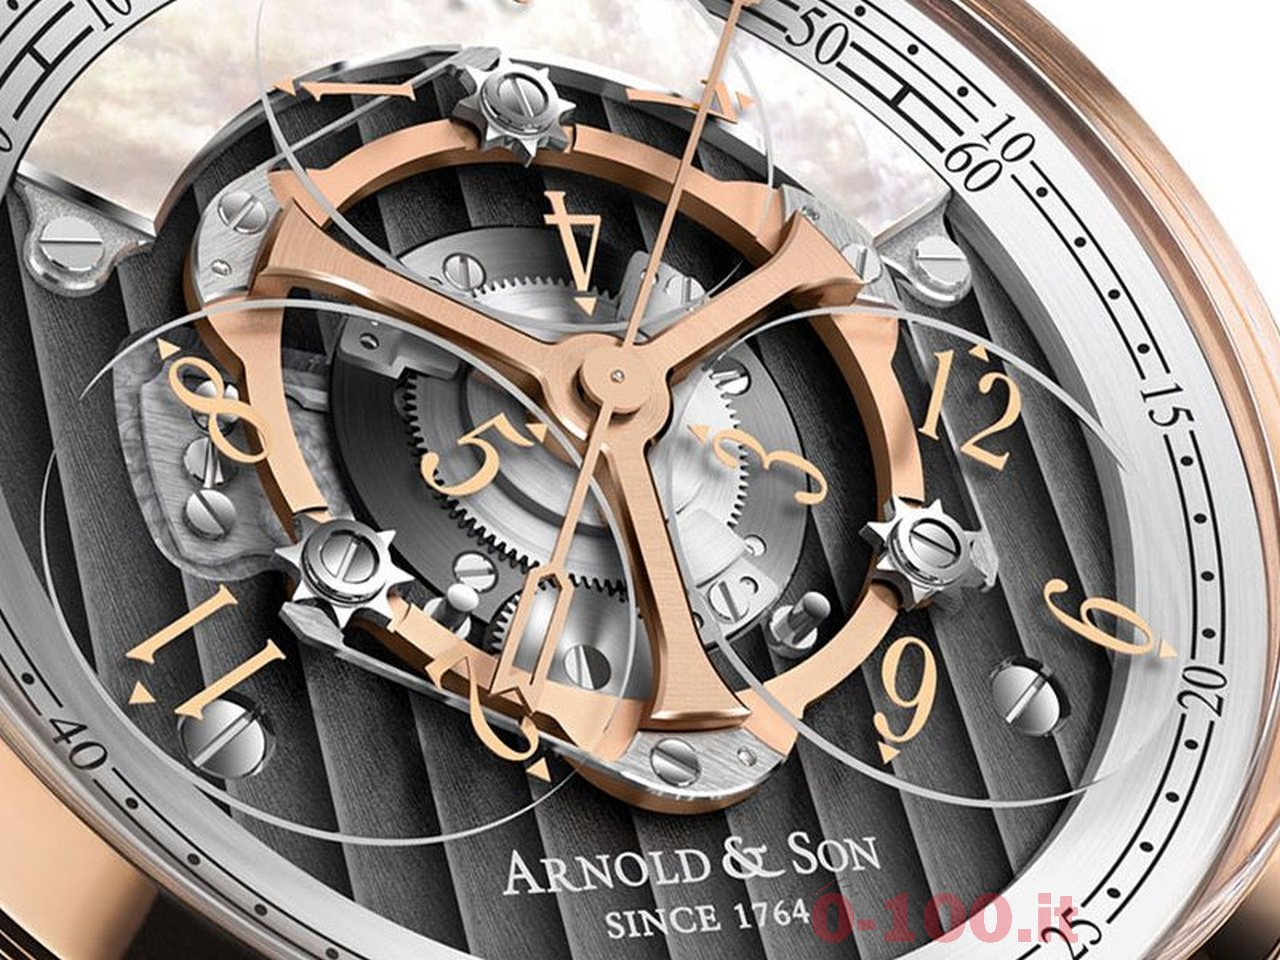 anteprima-baselworld-2015-arnold-son-golden-wheel-limited-edition-ref-1hvar-m01a-c120a-prezzo-price_0-100_3